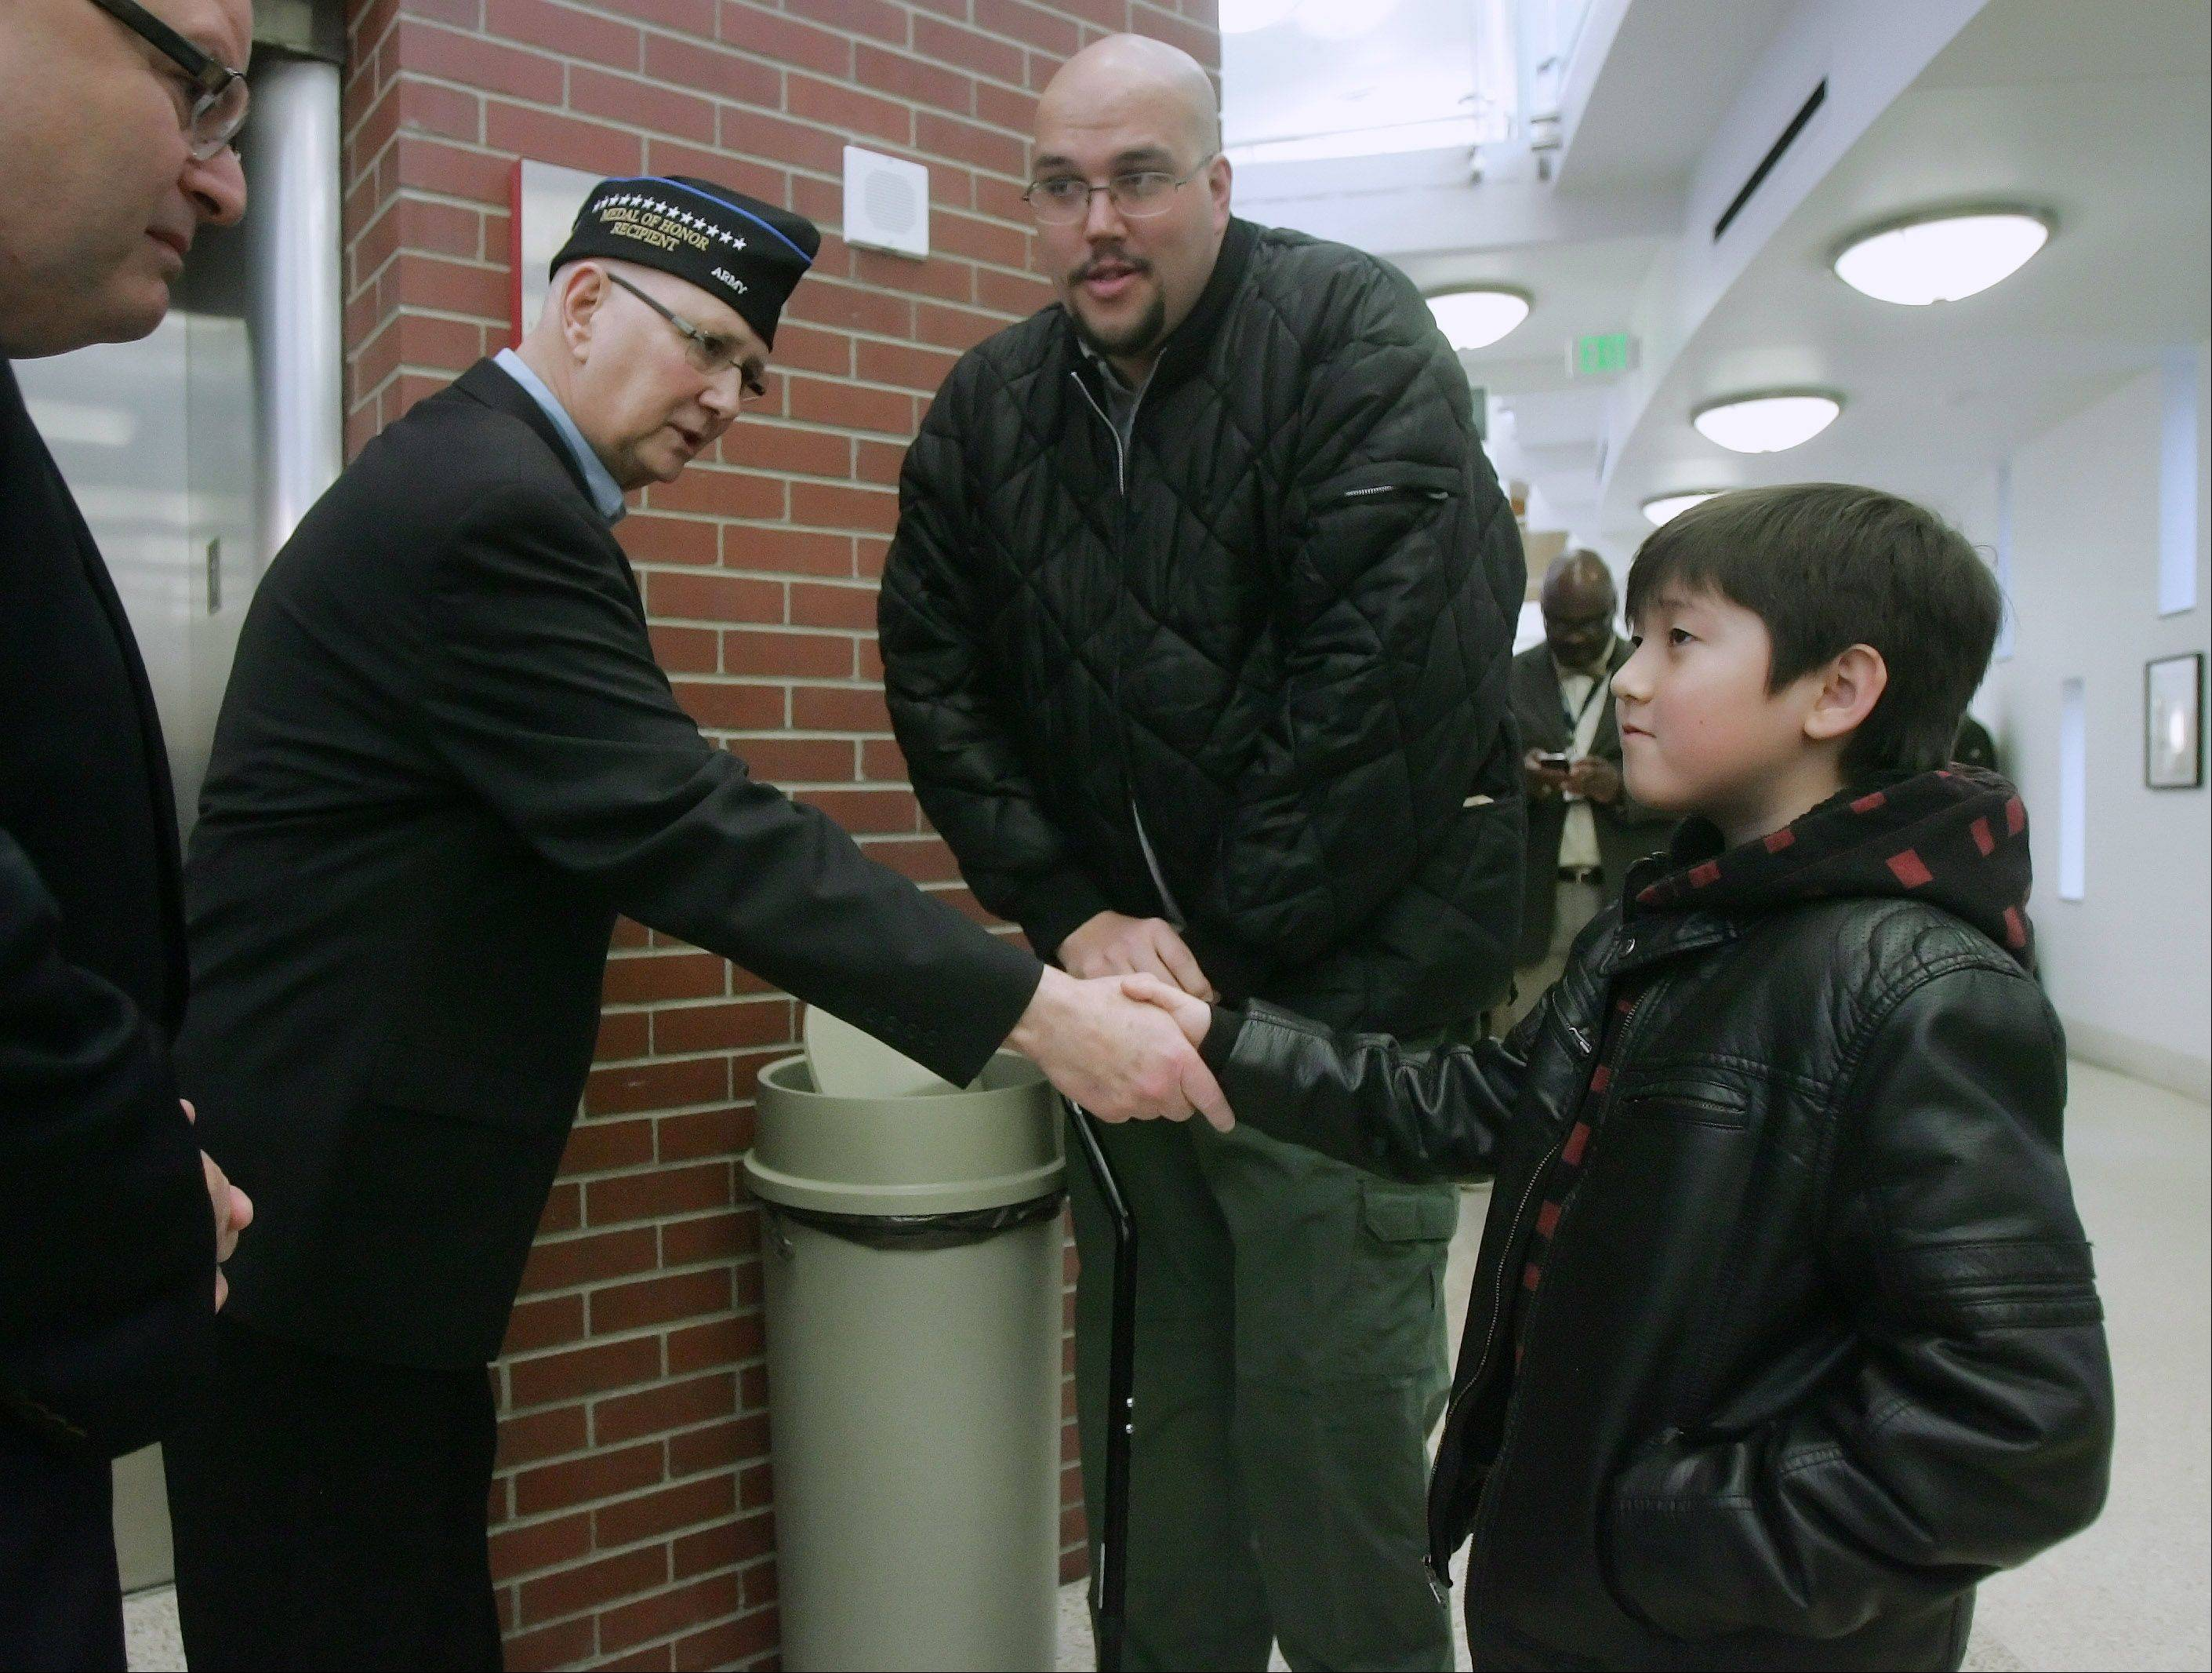 Medal of Honor recipient Allen Lynch, of Gurnee, shakes hands with 10-year-old Jinu Puclik, of Glenview, and his dad, Tim, at the Capt. James A. Lovell Federal Health Care Center Monday. Lynch was recognized during a ceremony commemorating National Medal of Honor Day.